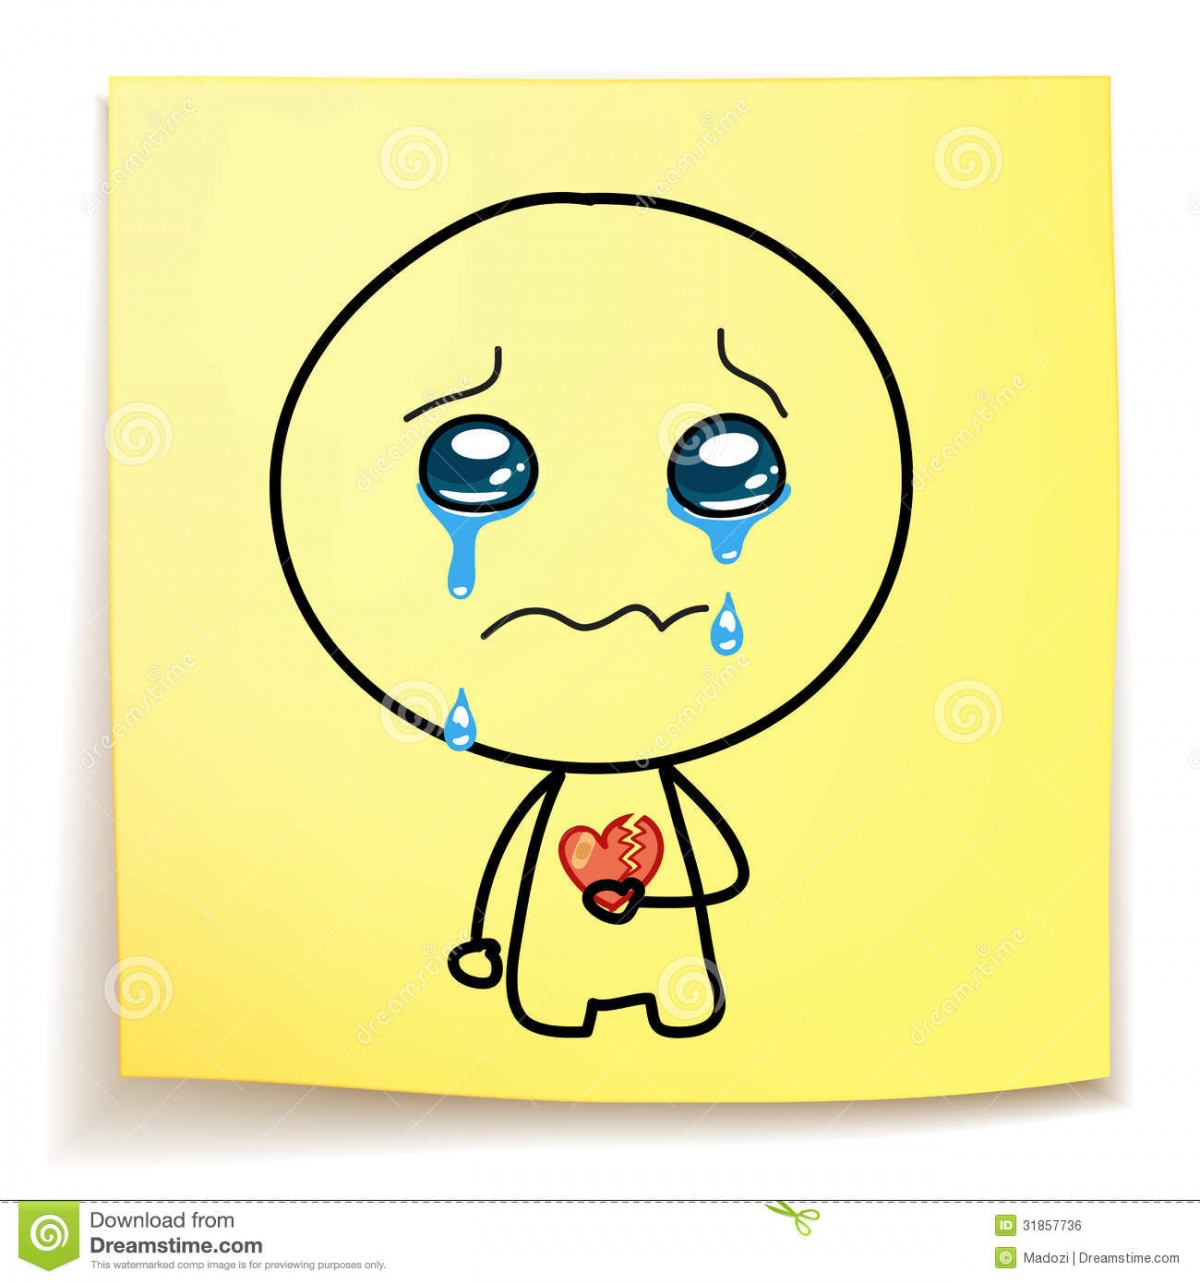 Name:  hand-drawn-cartoon-crying-broken-heart-sticky-notes-31857736.jpg Views: 352 Size:  230.6 KB